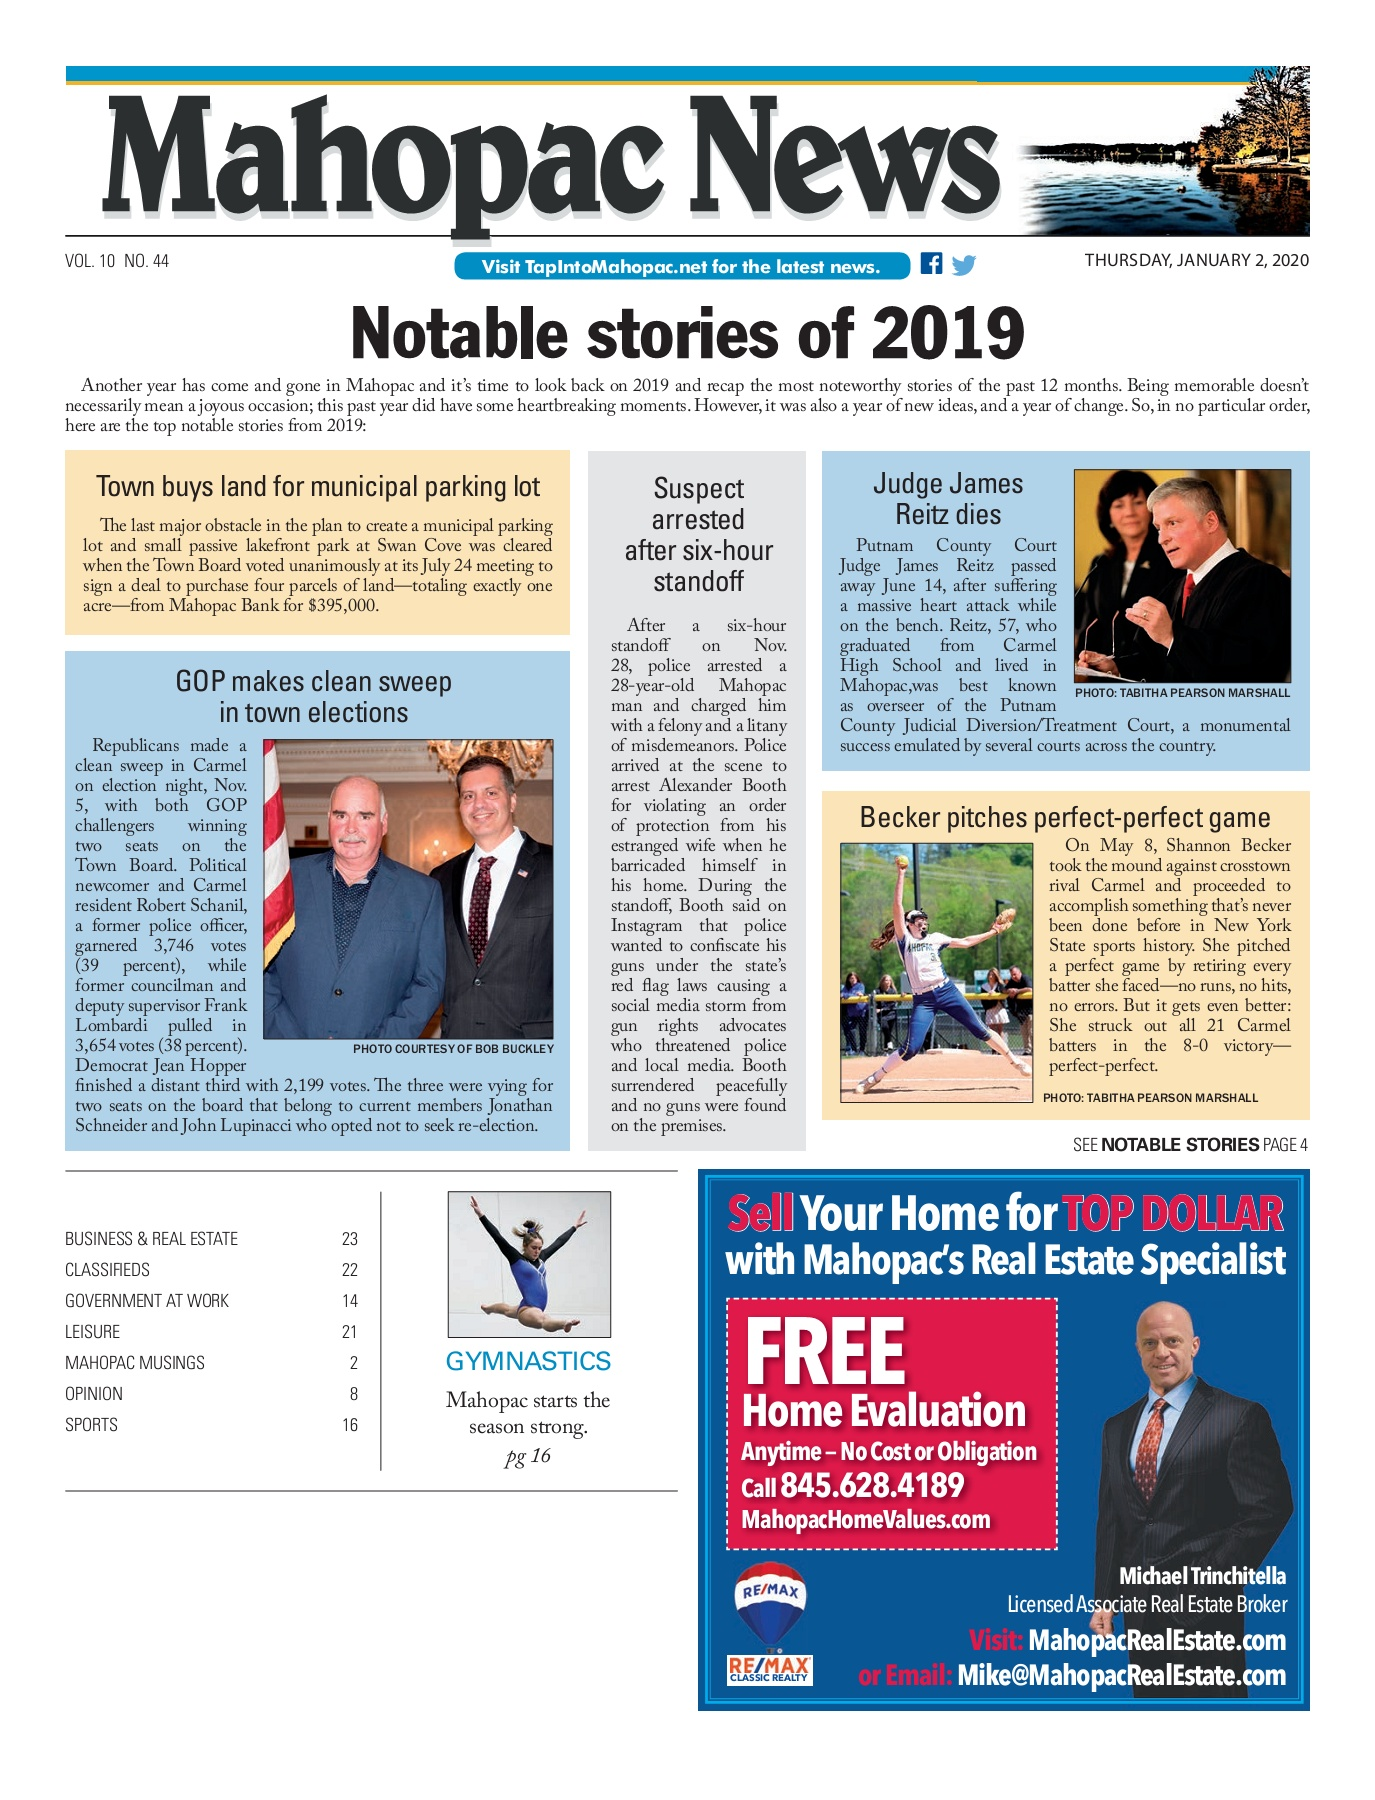 Mahopac News 01 02 20 Flip Ebook Pages 1 24 Anyflip Anyflip